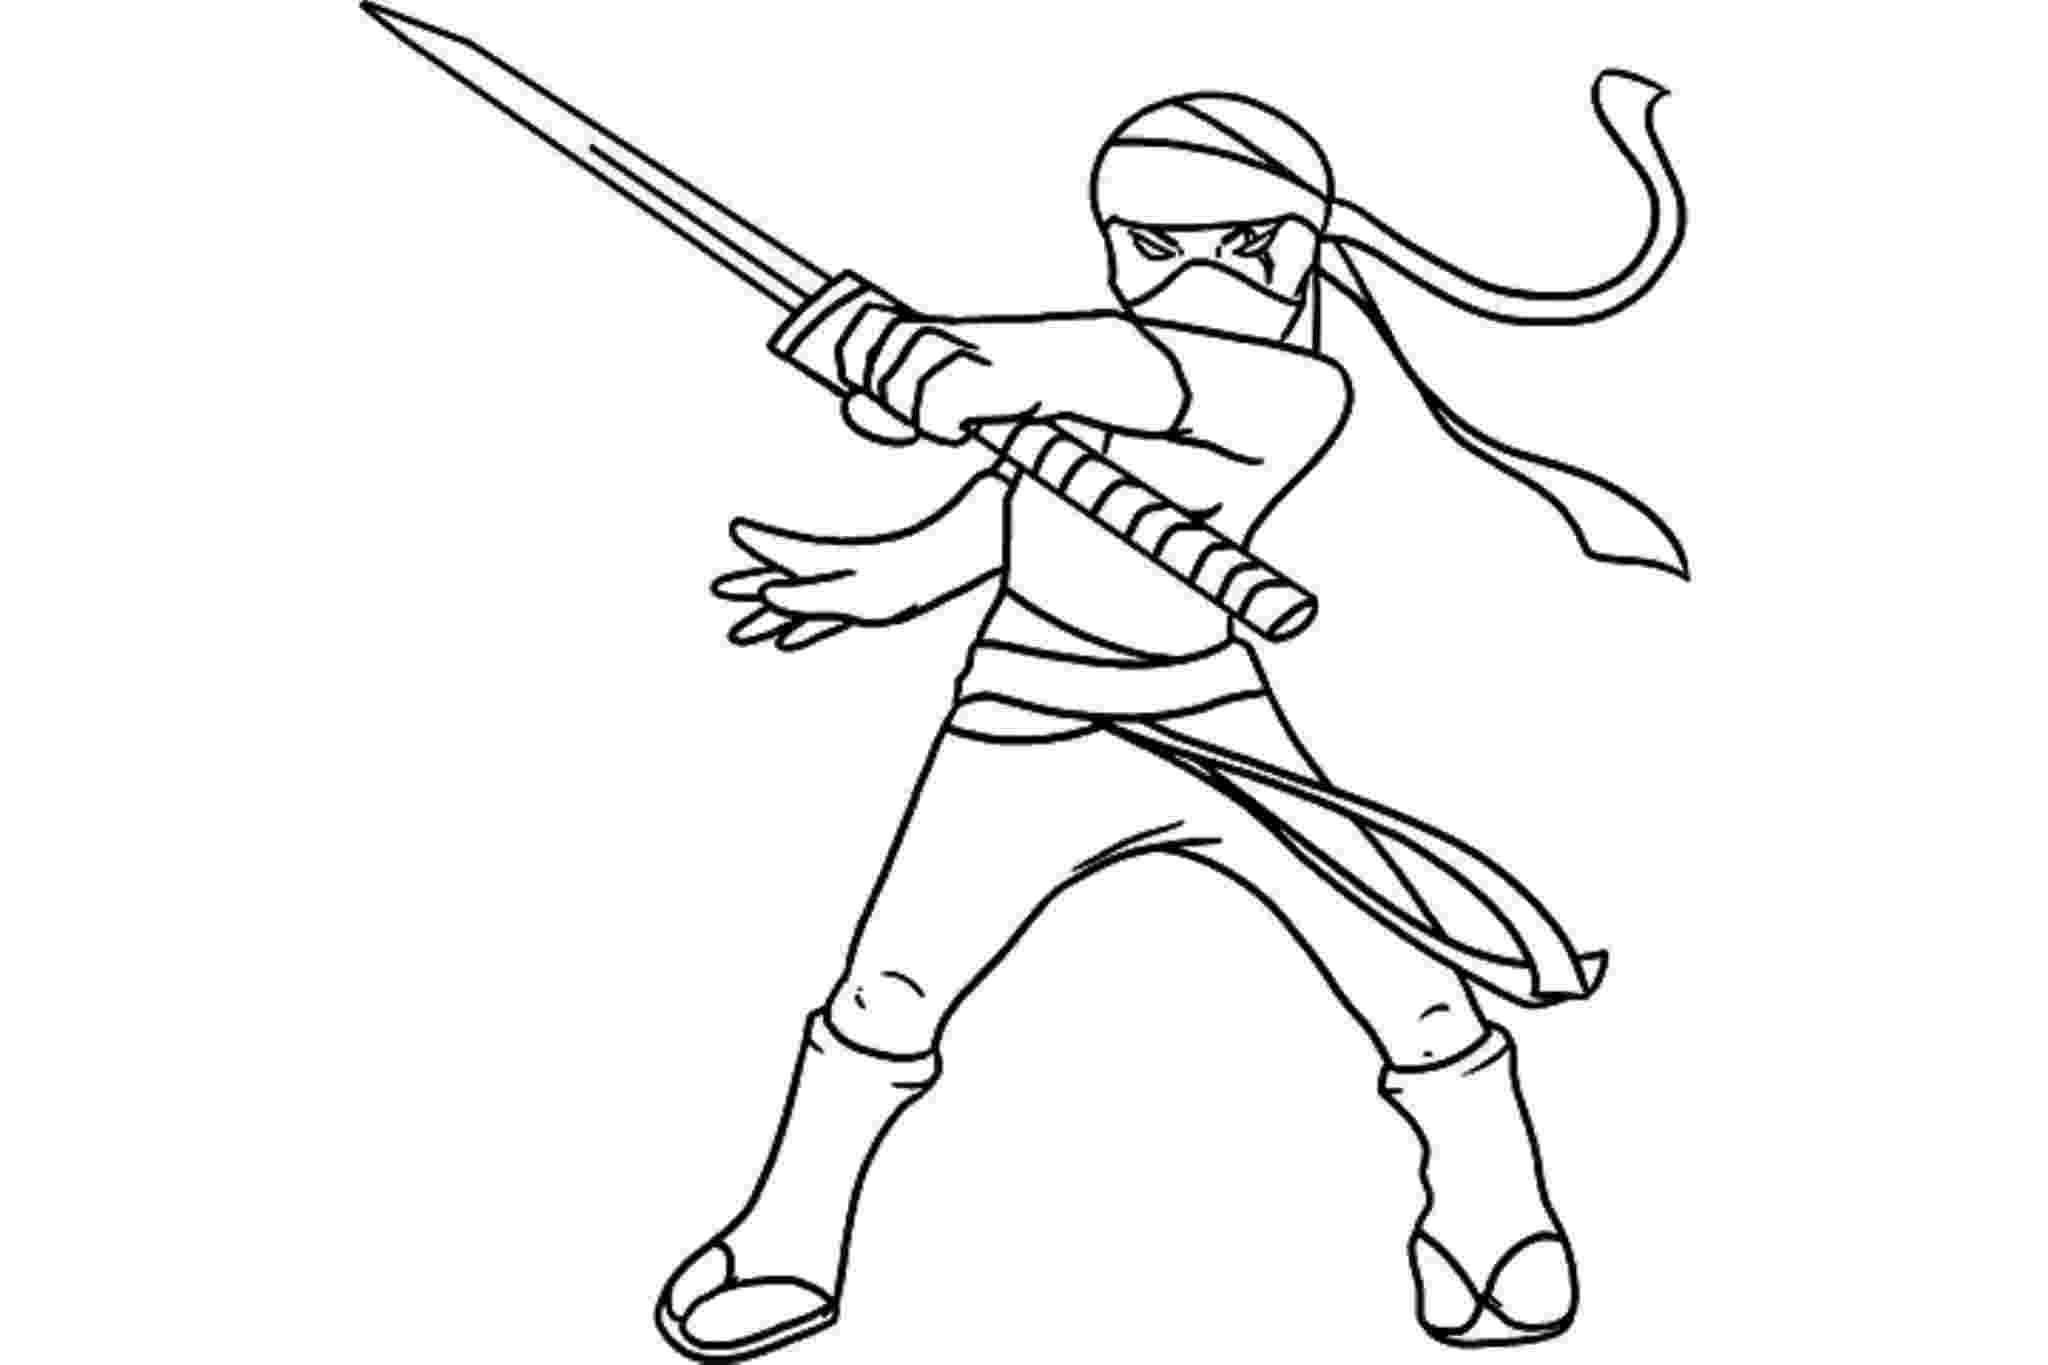 ninja coloring sheets how to draw a zombie ninja zombie ninja step by step ninja coloring sheets